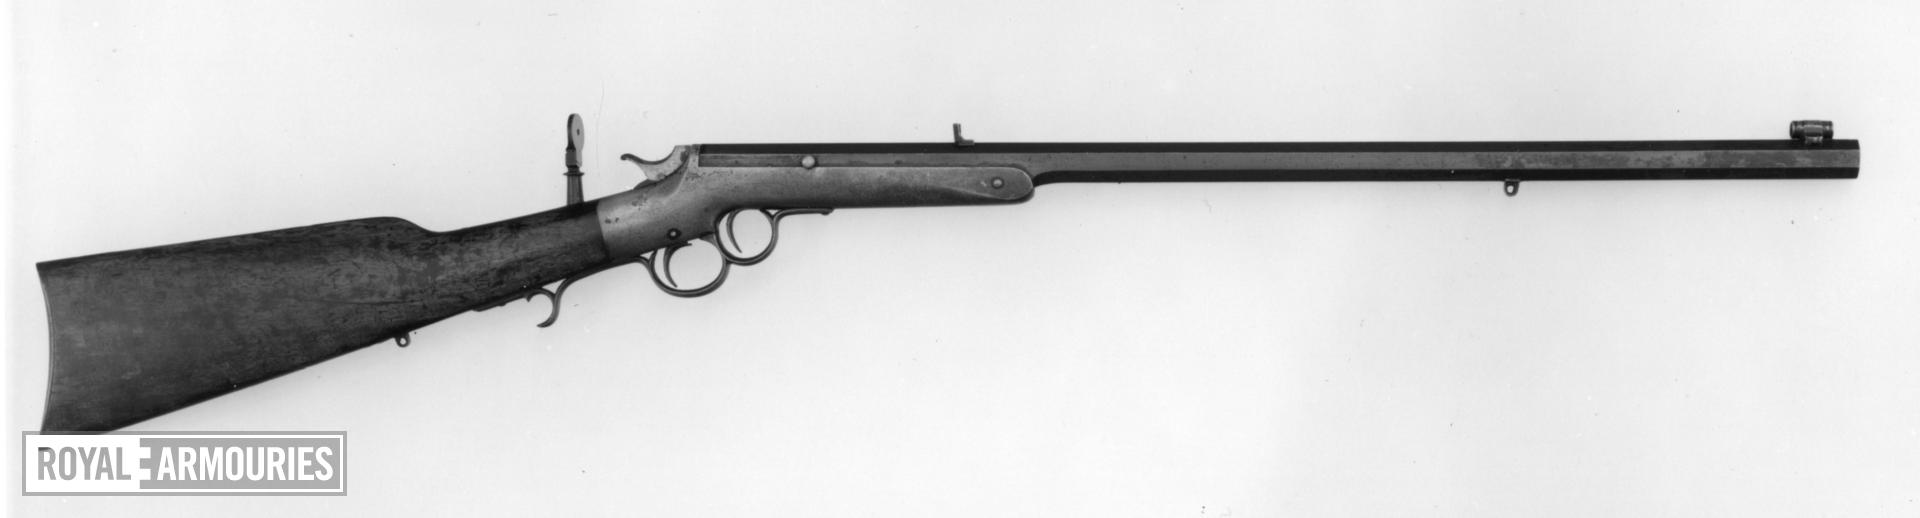 Rimfire target rifle - By Frank Wesson